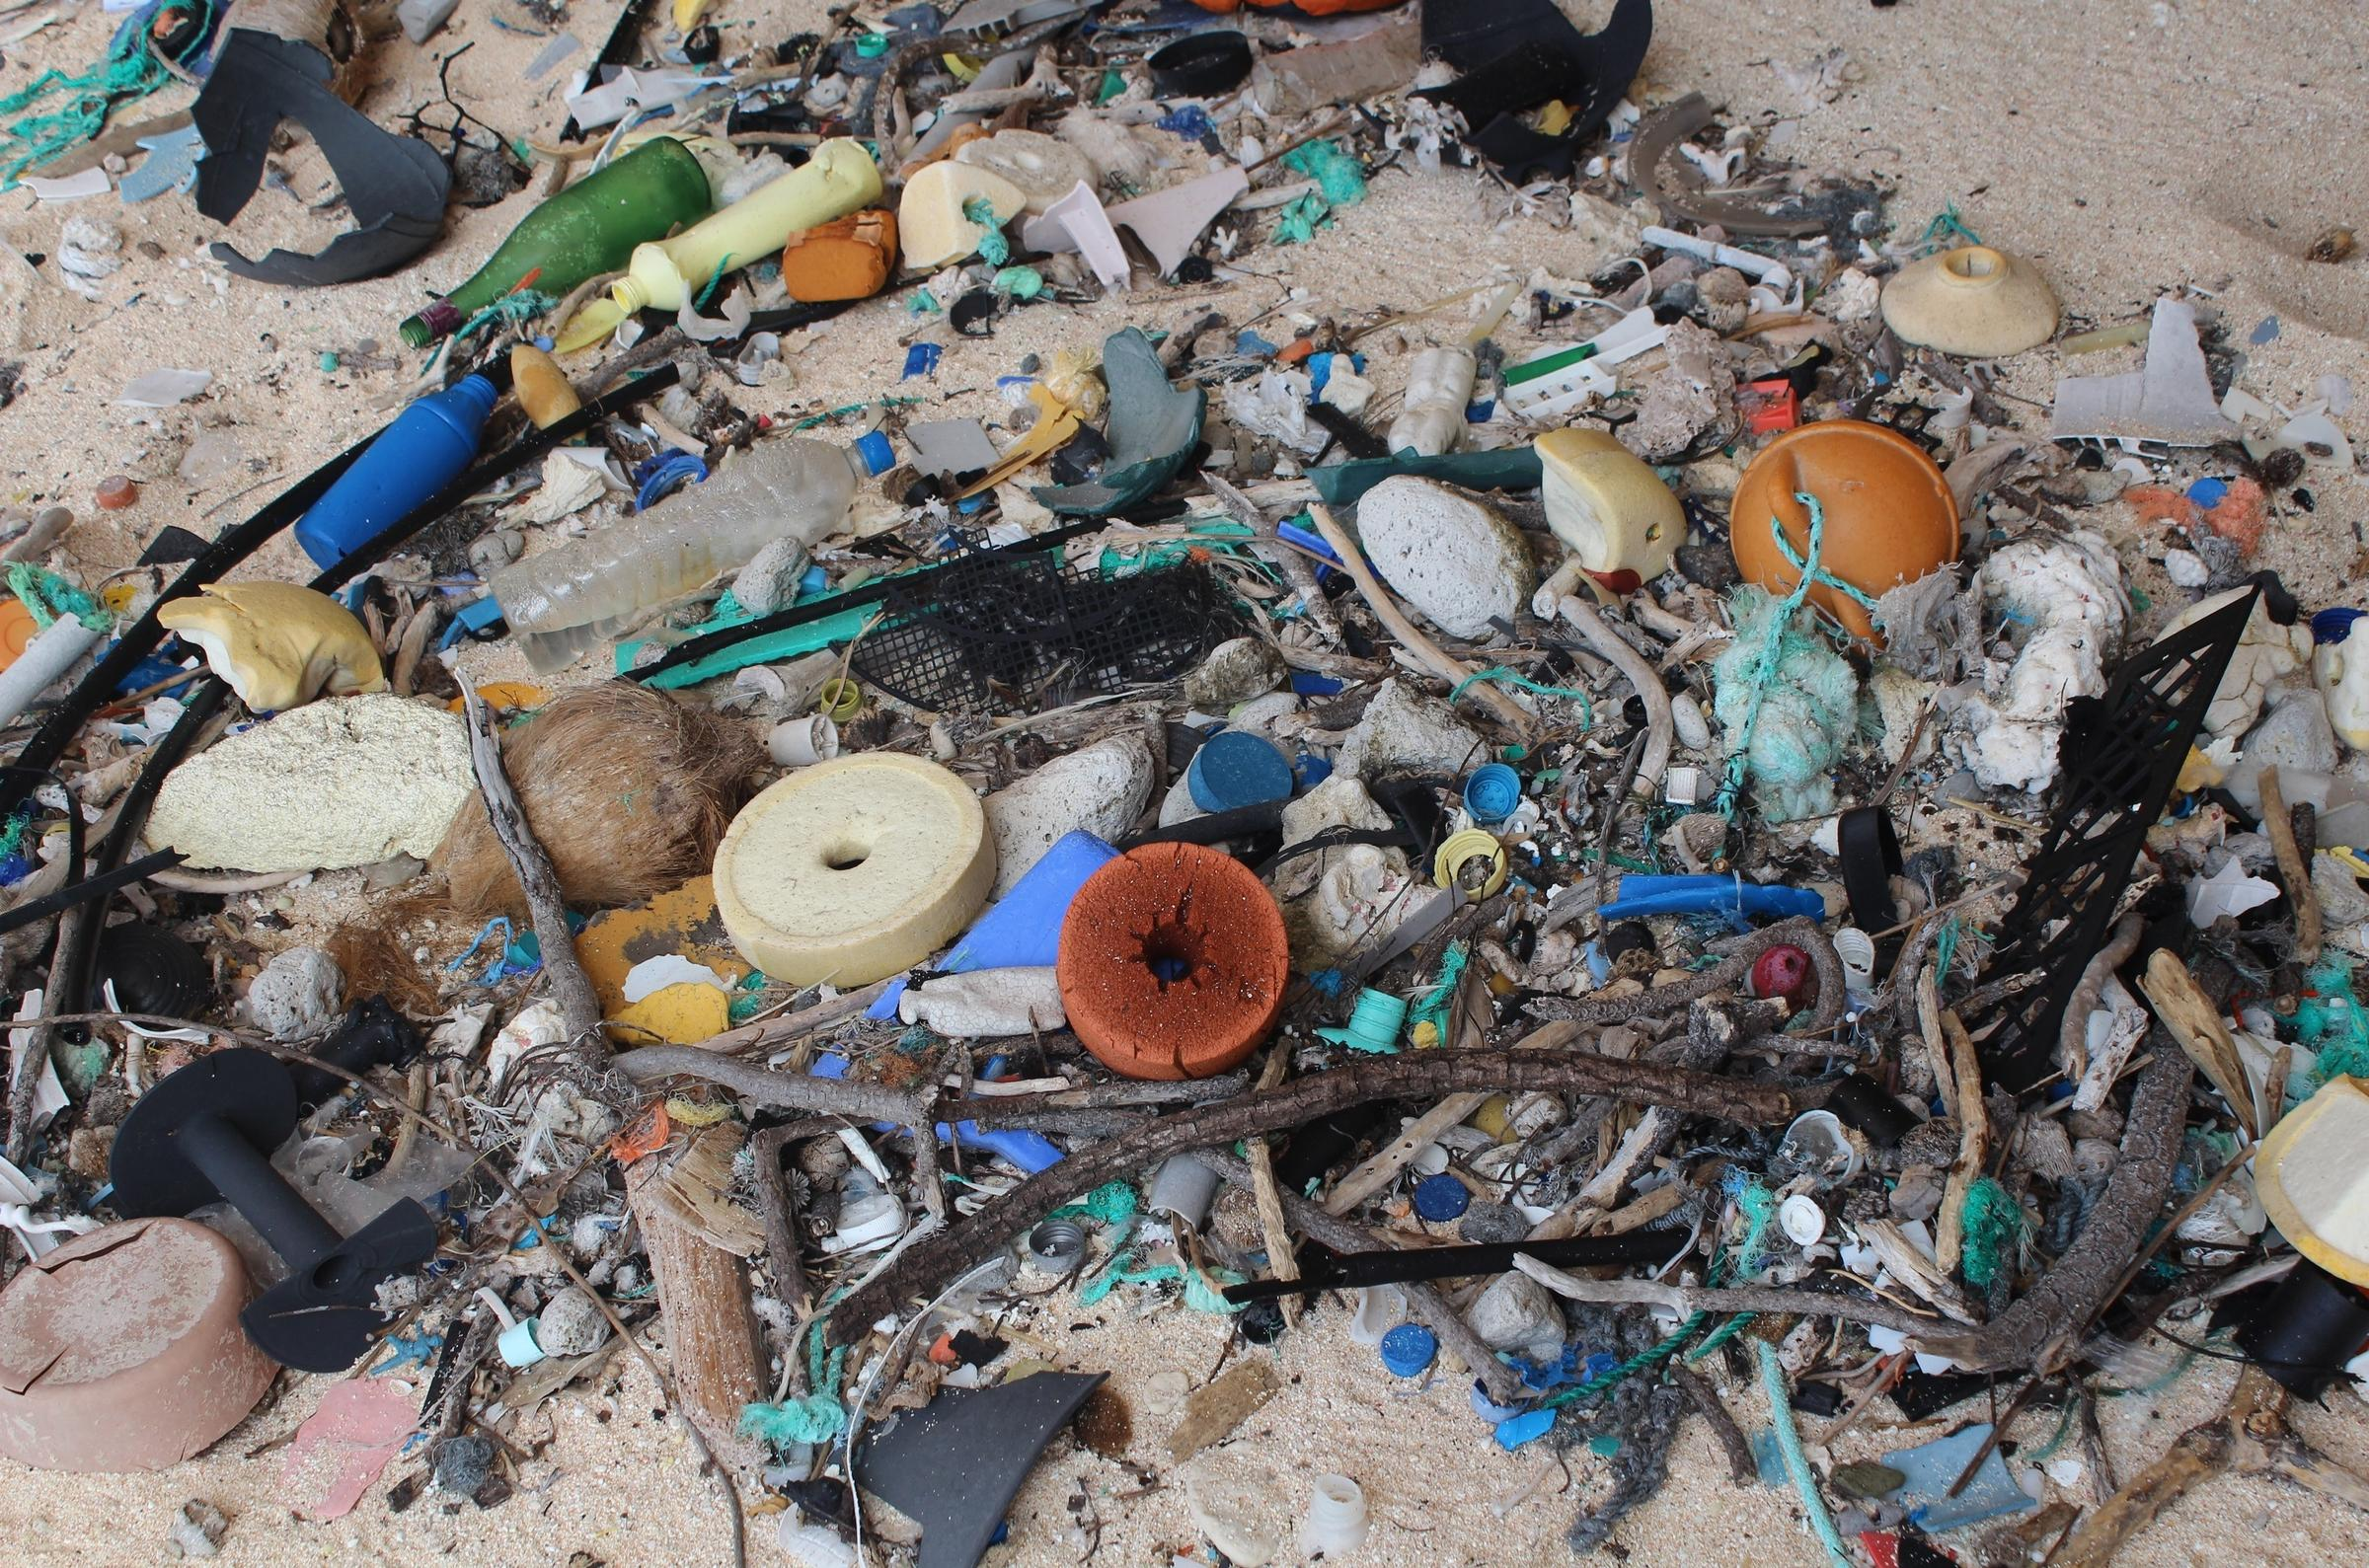 37 million bits of plastic debris found on remote South Pacific island